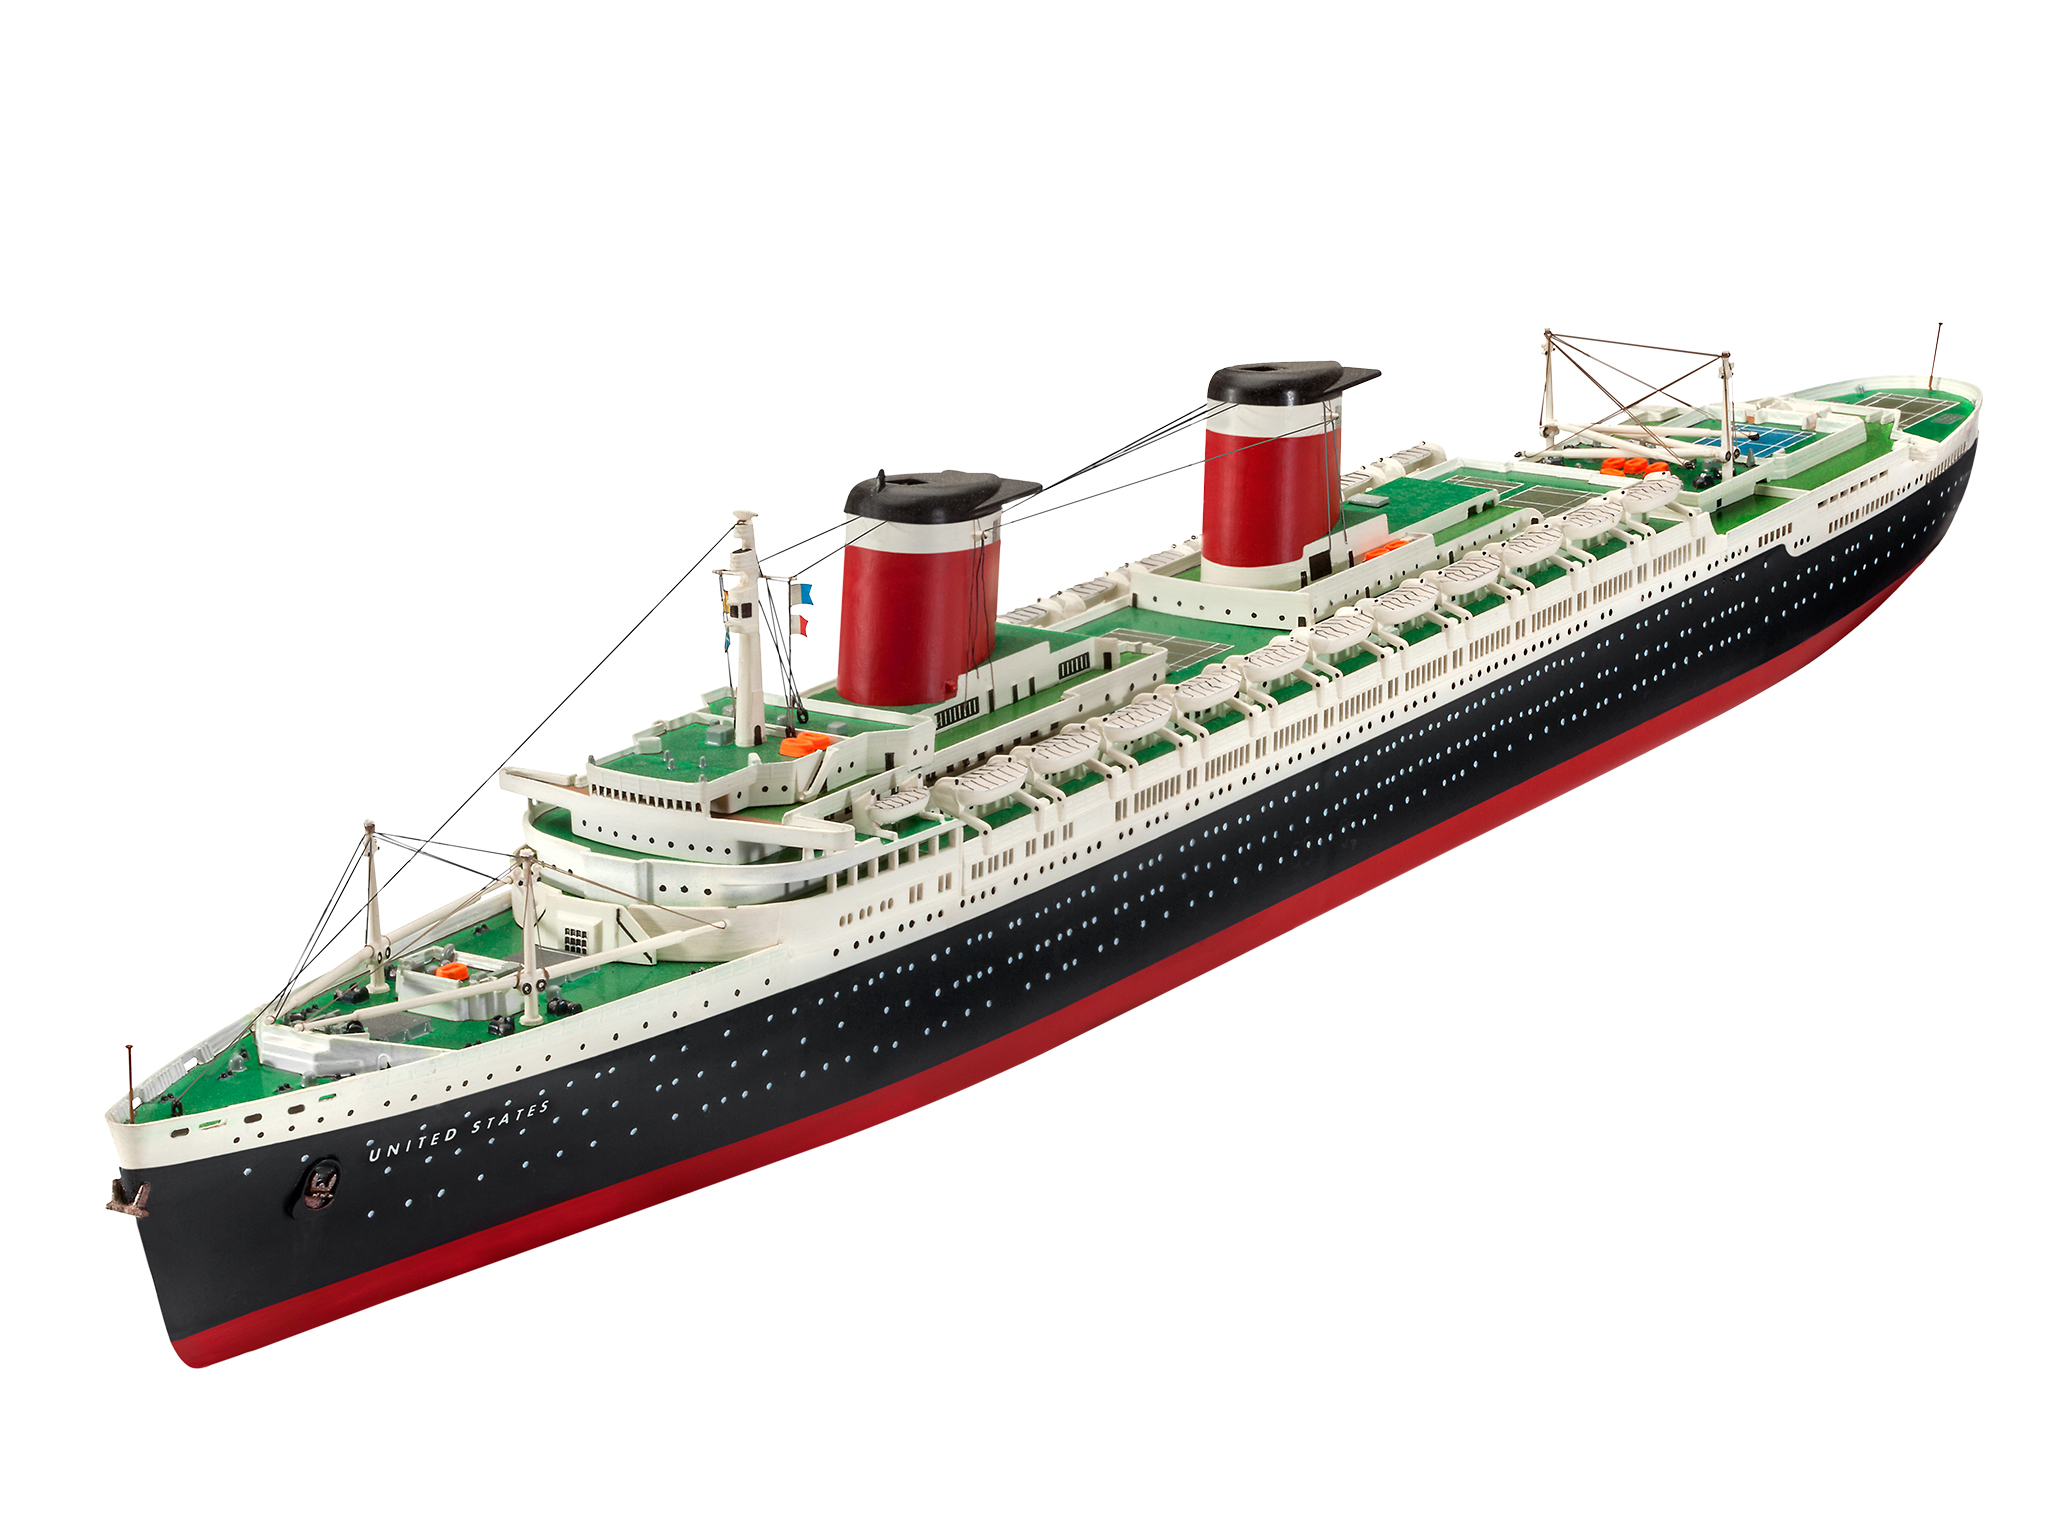 hobby shop rc helicopter with Ss United States on StrikerRCSpyDroneReplacementUSBCharger besides Projet Drone 2500mm Kit likewise Cmp Cp09 086 Leo V2 as well SS United States together with XStreetFordGTRTR110ElectricRCCarREFURB.